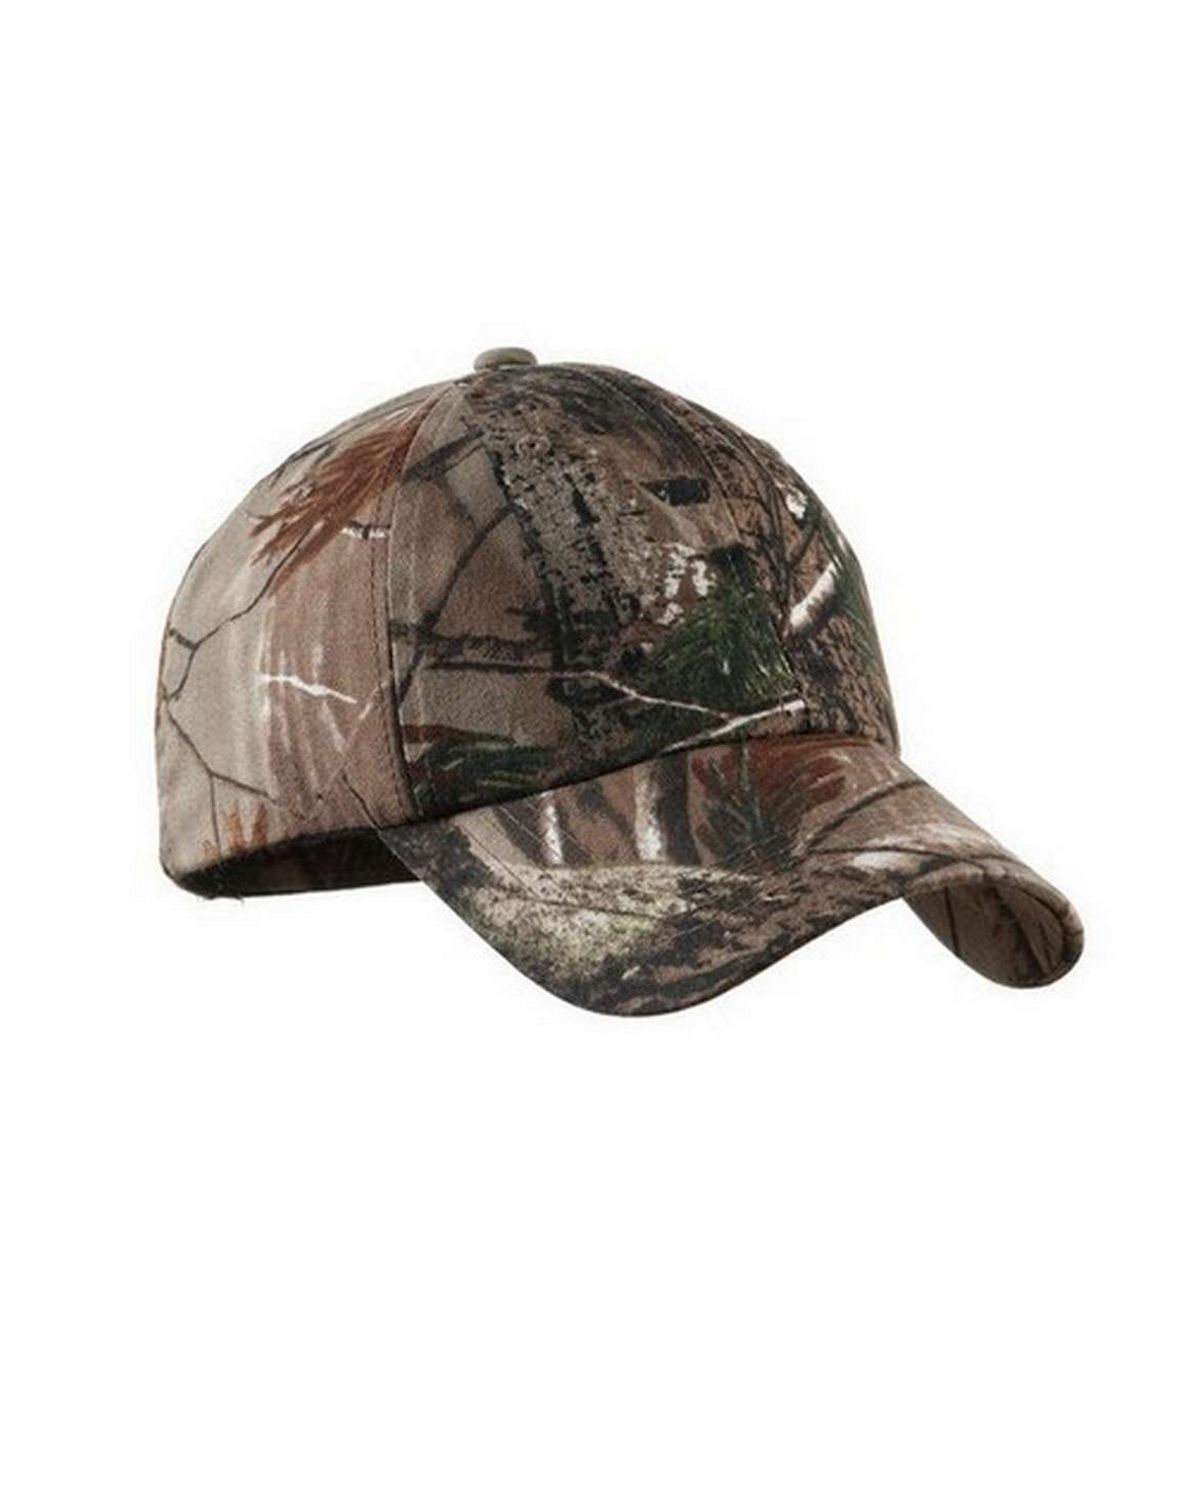 Port Authority C871 Pro Camouflage Series Garment Washed Cap